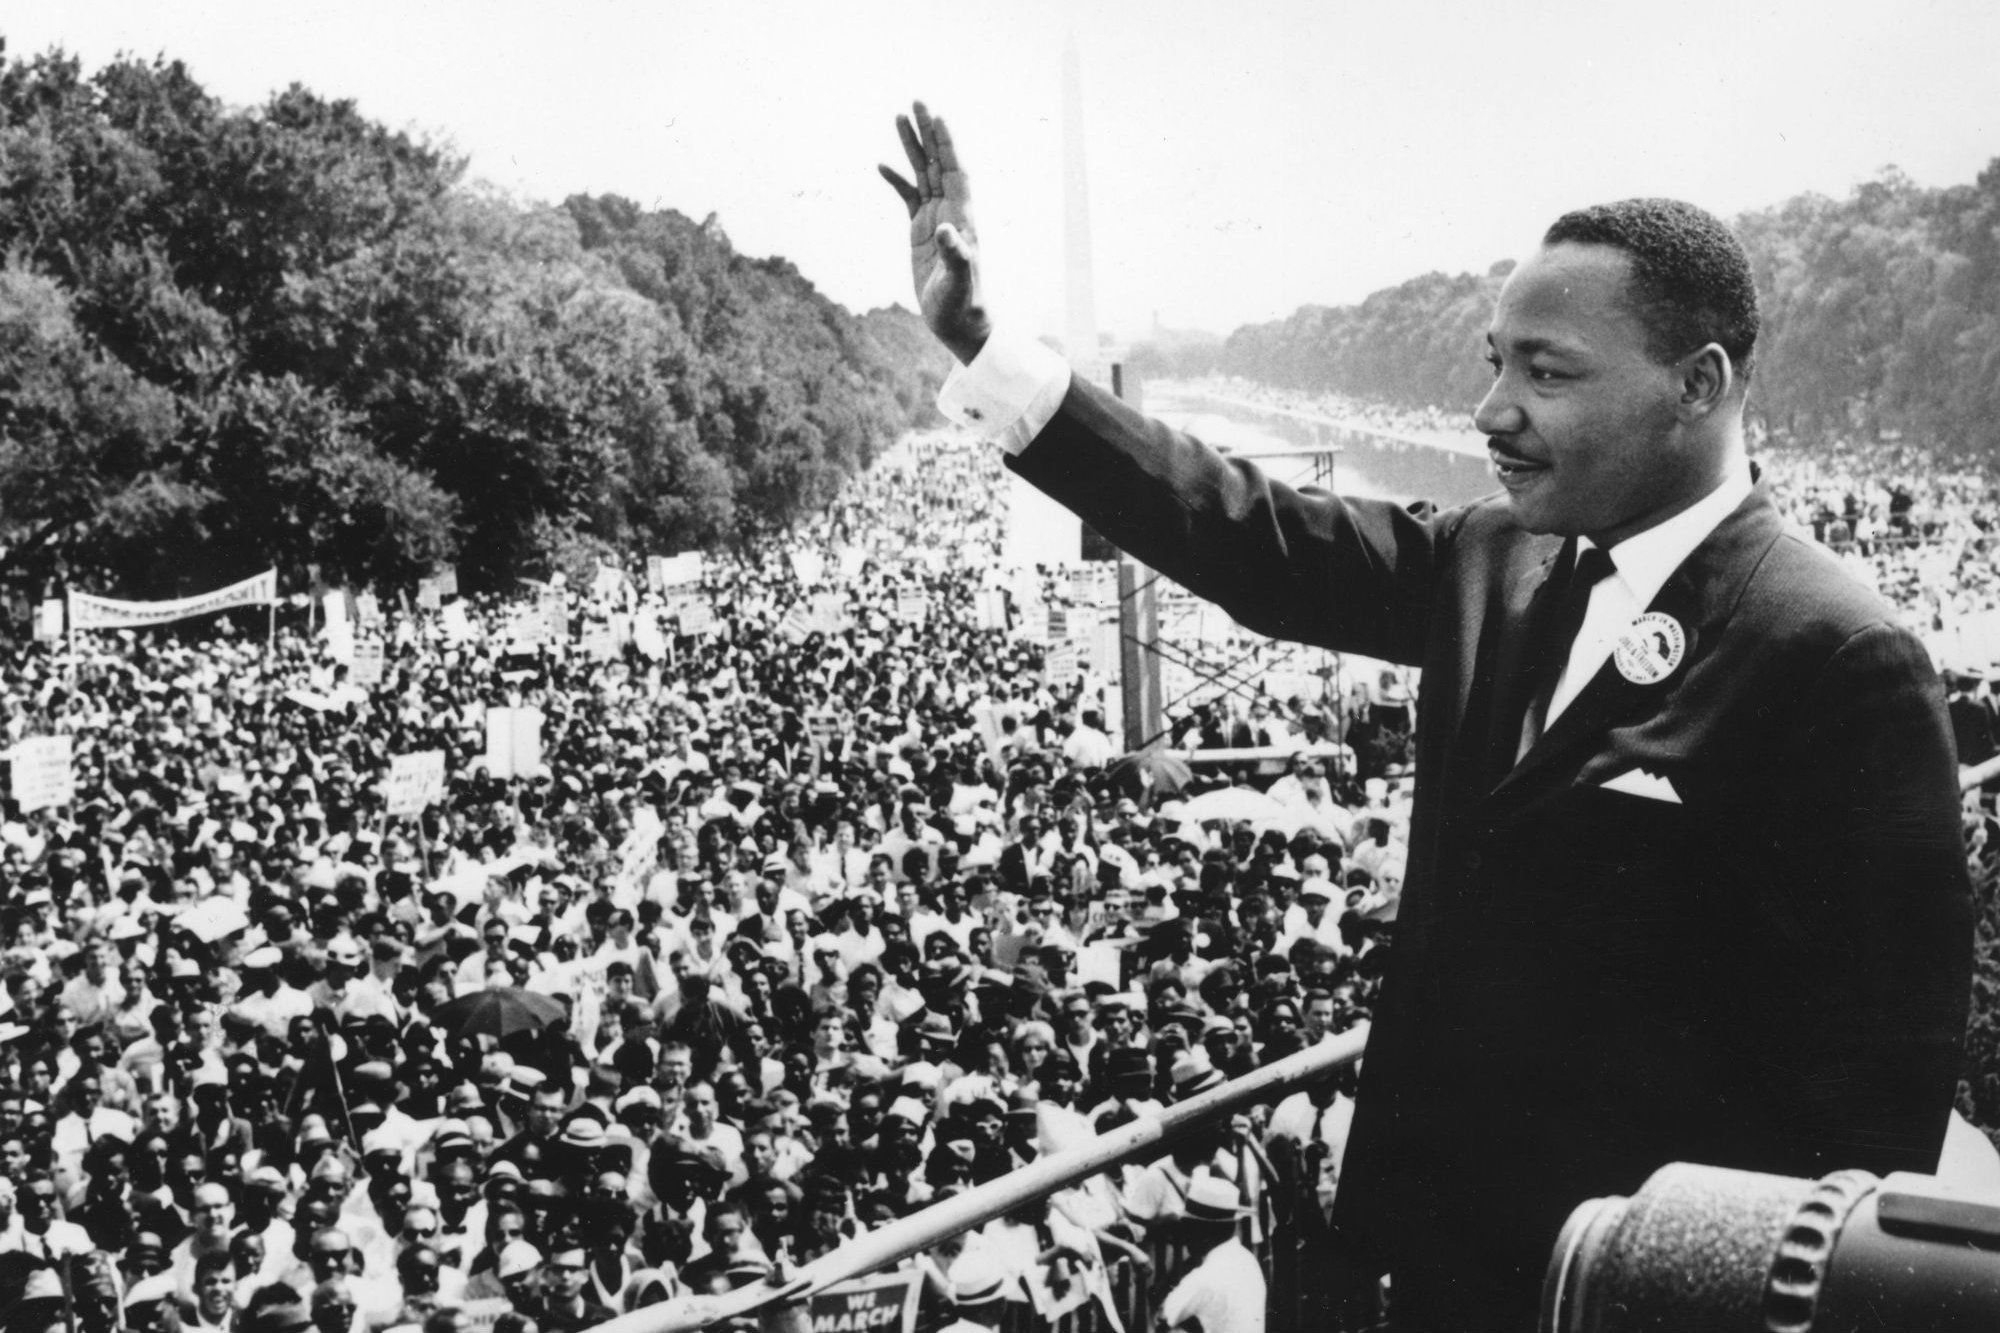 Memorable Martin Luther King, Jr. Quotations